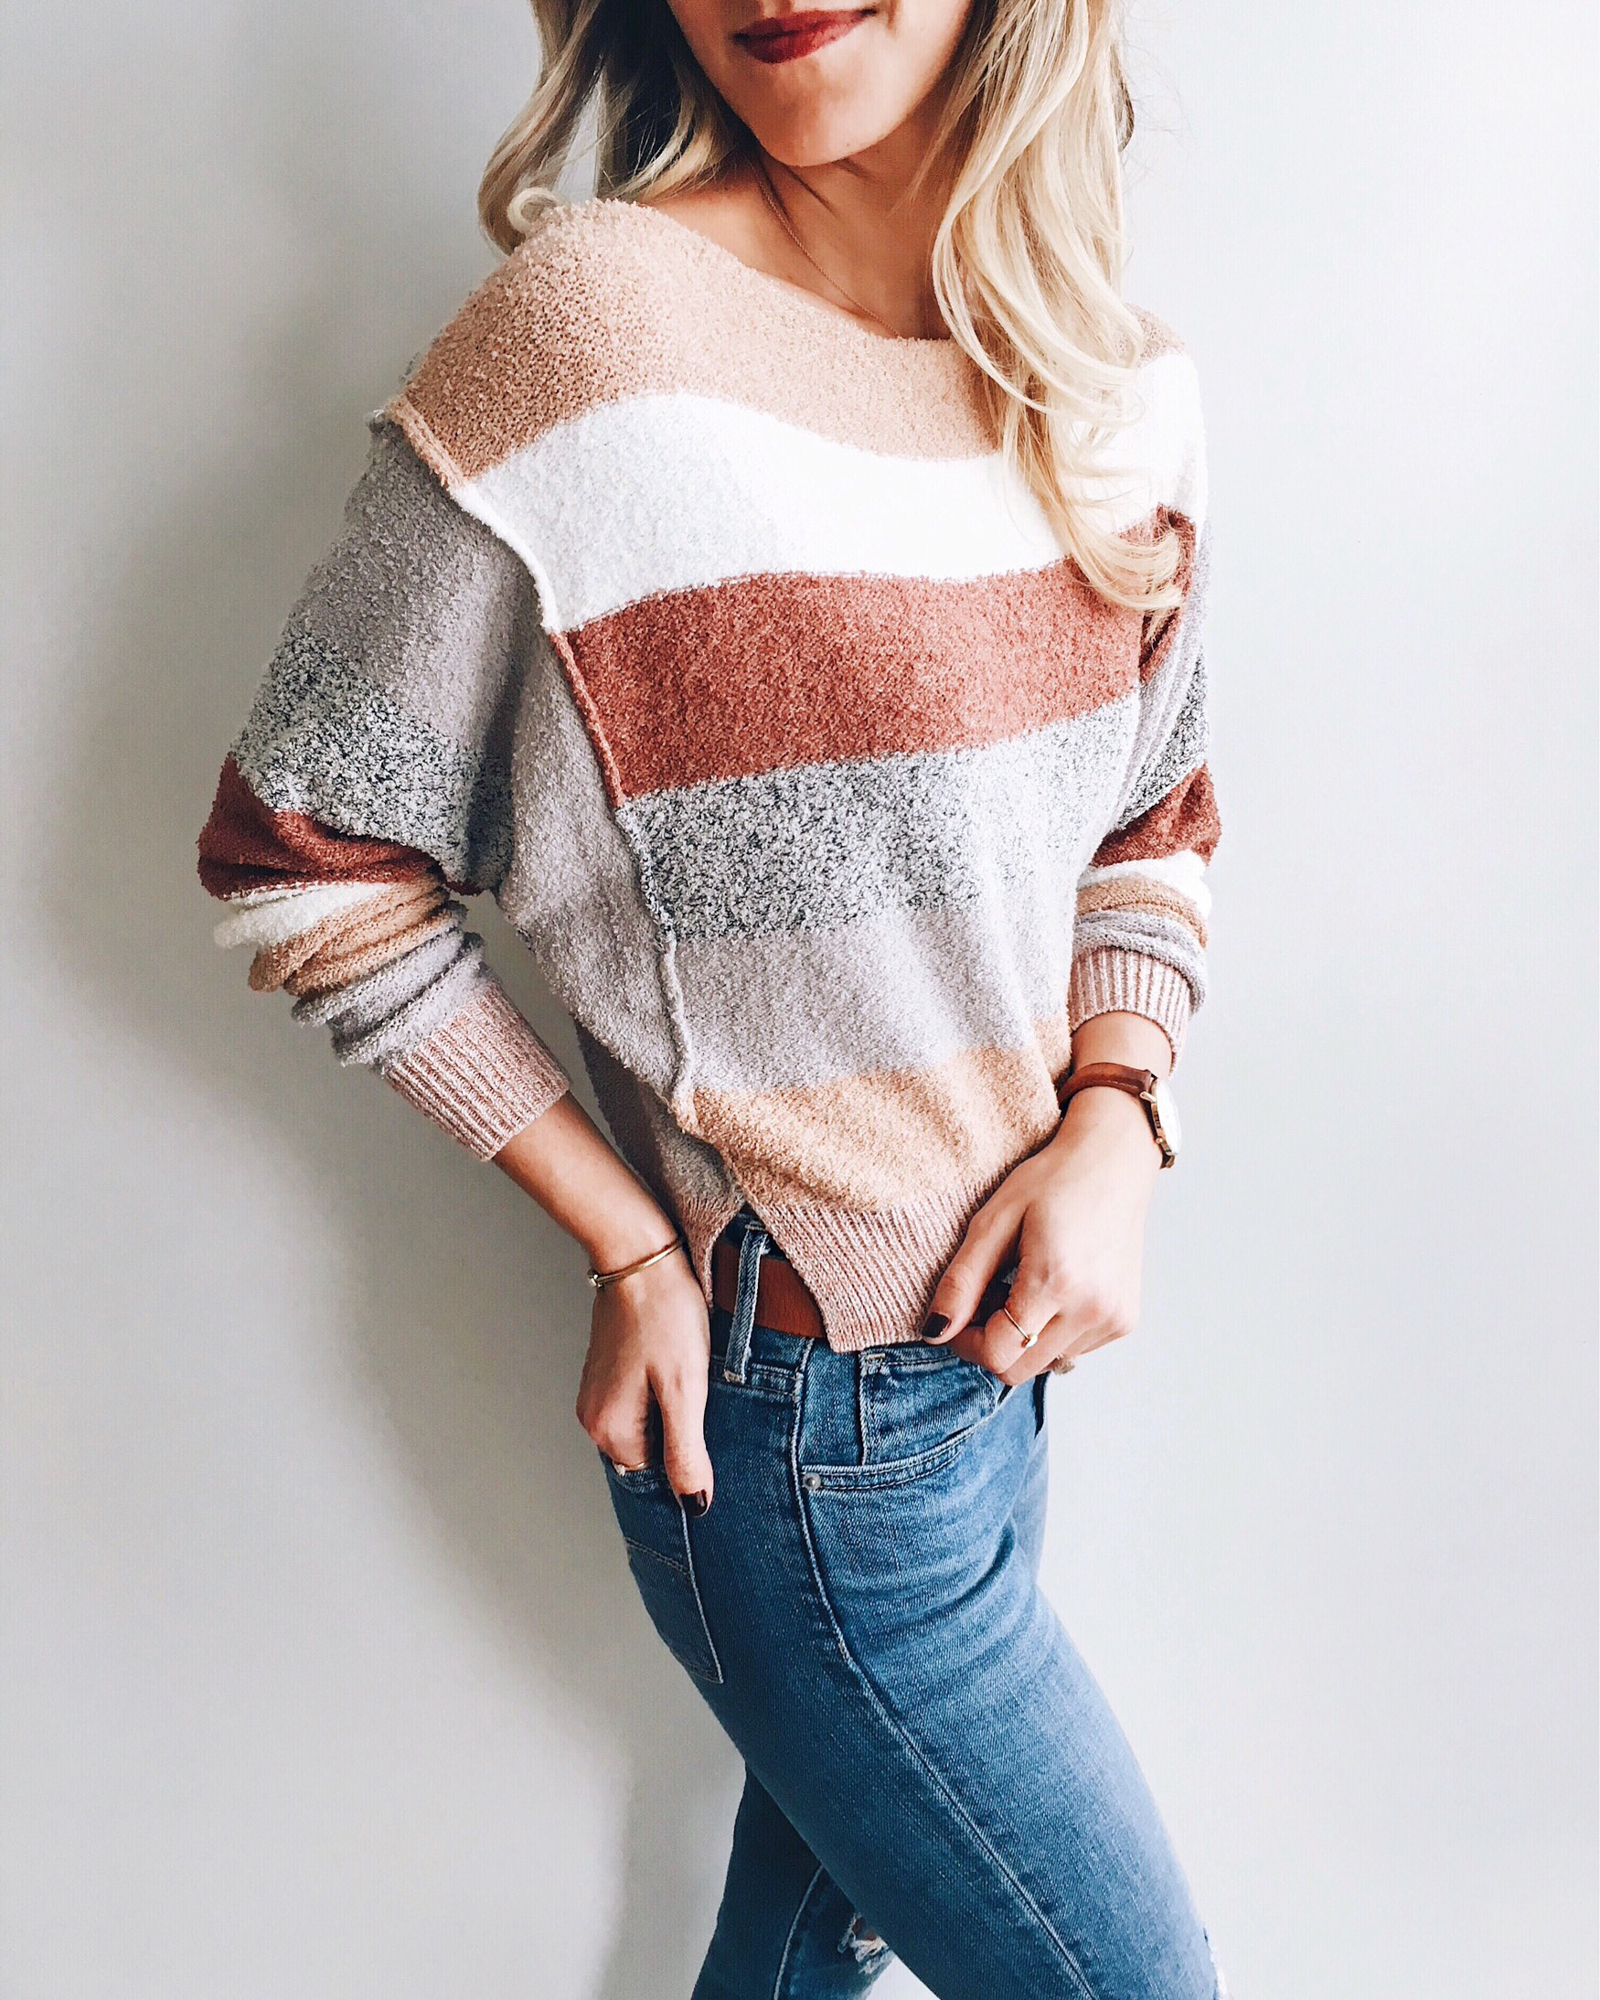 livvyland-blog-olivia-watson-instagram-roundup-austin-texas-cozy-winter-outfit-striped-sweater